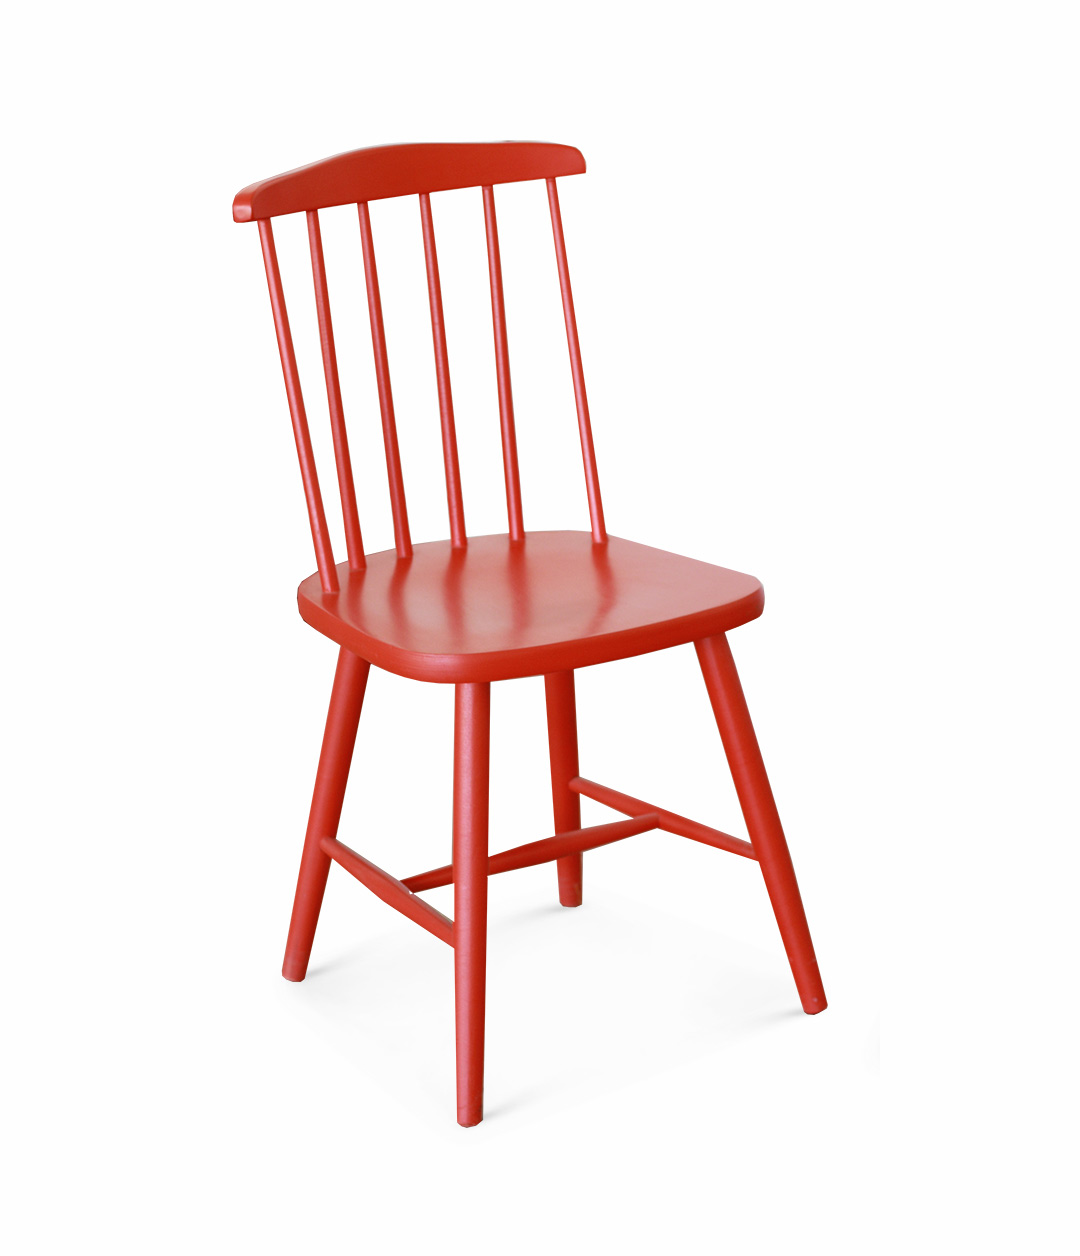 Colored Waterford chair